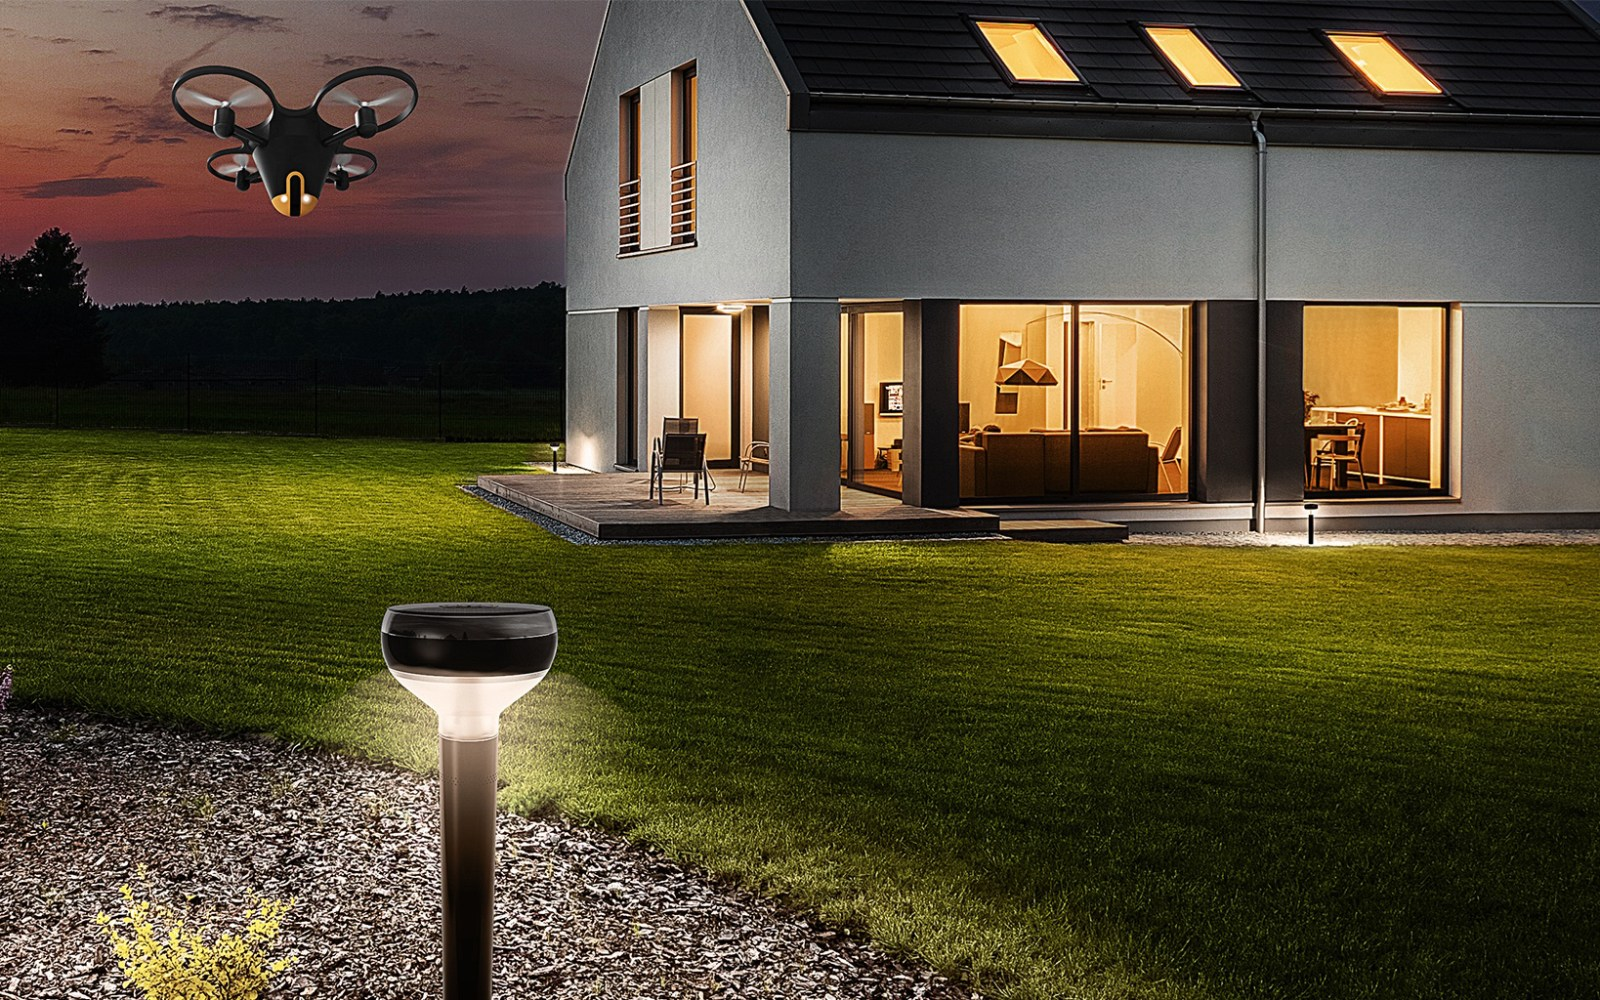 The Sunflower Home Awareness System deploys a drone when something is amiss outside